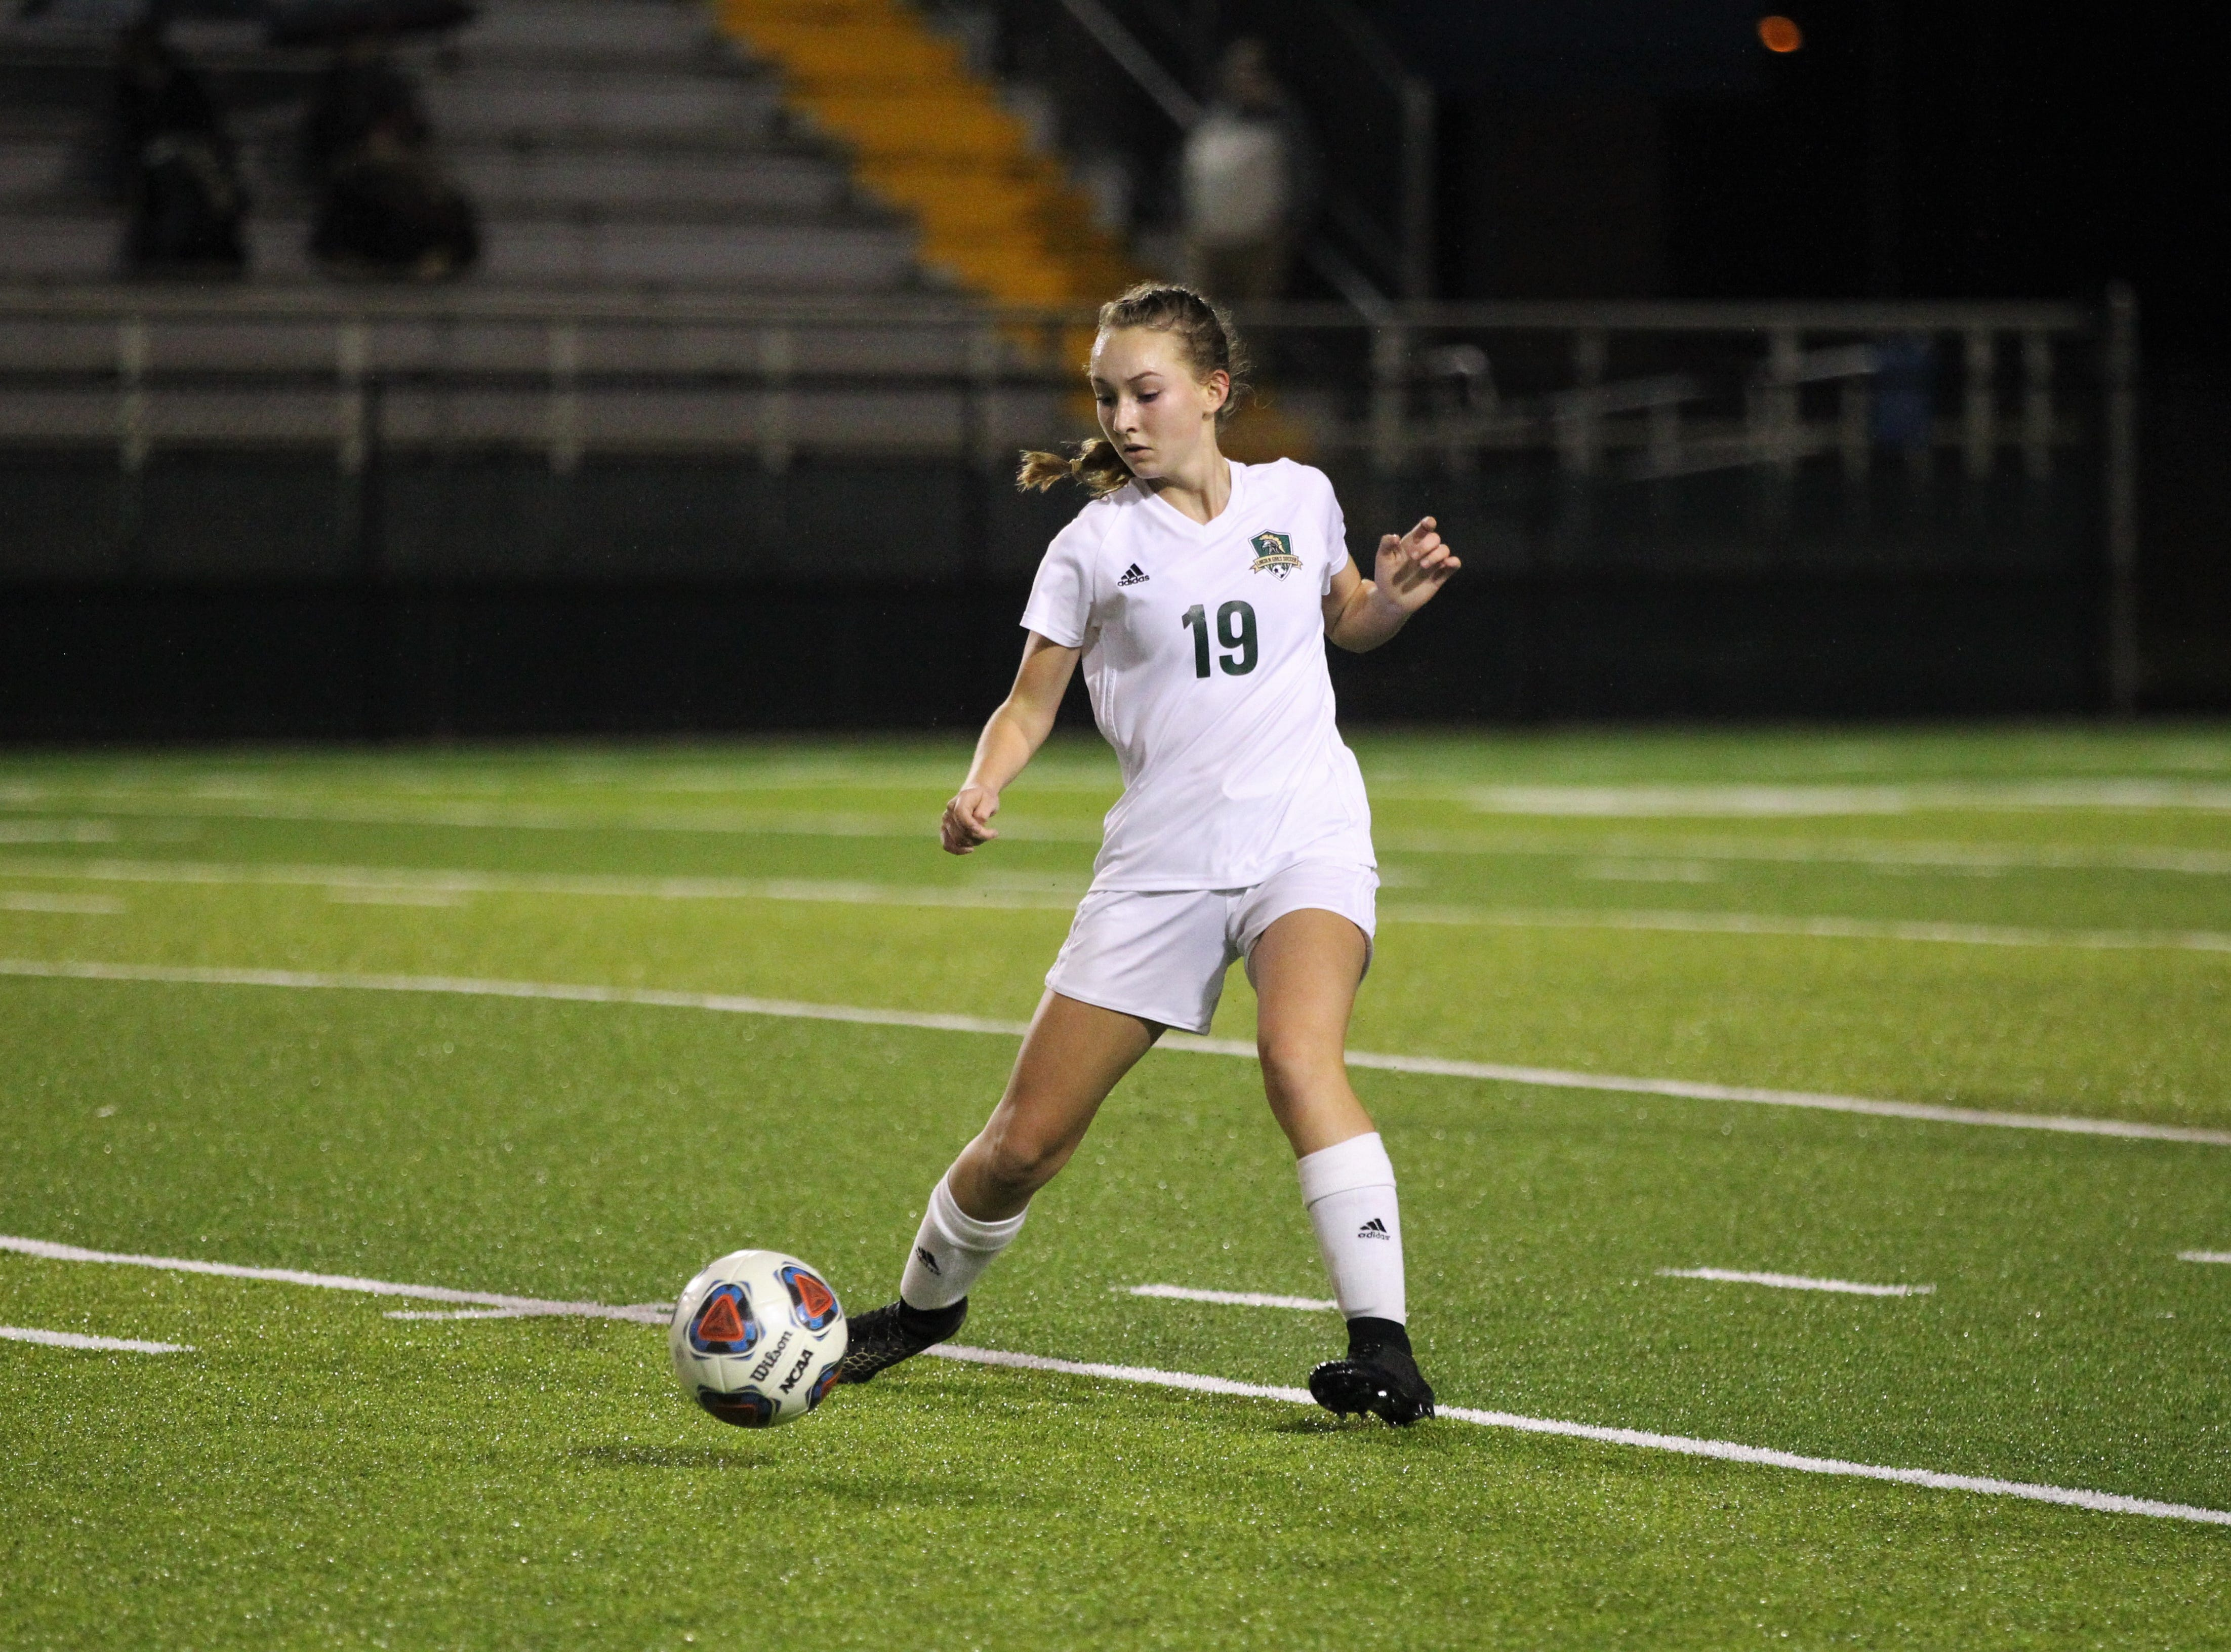 Lincoln midfielder Lexi Gray dribbles as Leon's girls soccer team beat Lincoln 2-1 in the District 2-4A championship at Gene Cox Stadium on Feb. 1, 2019.